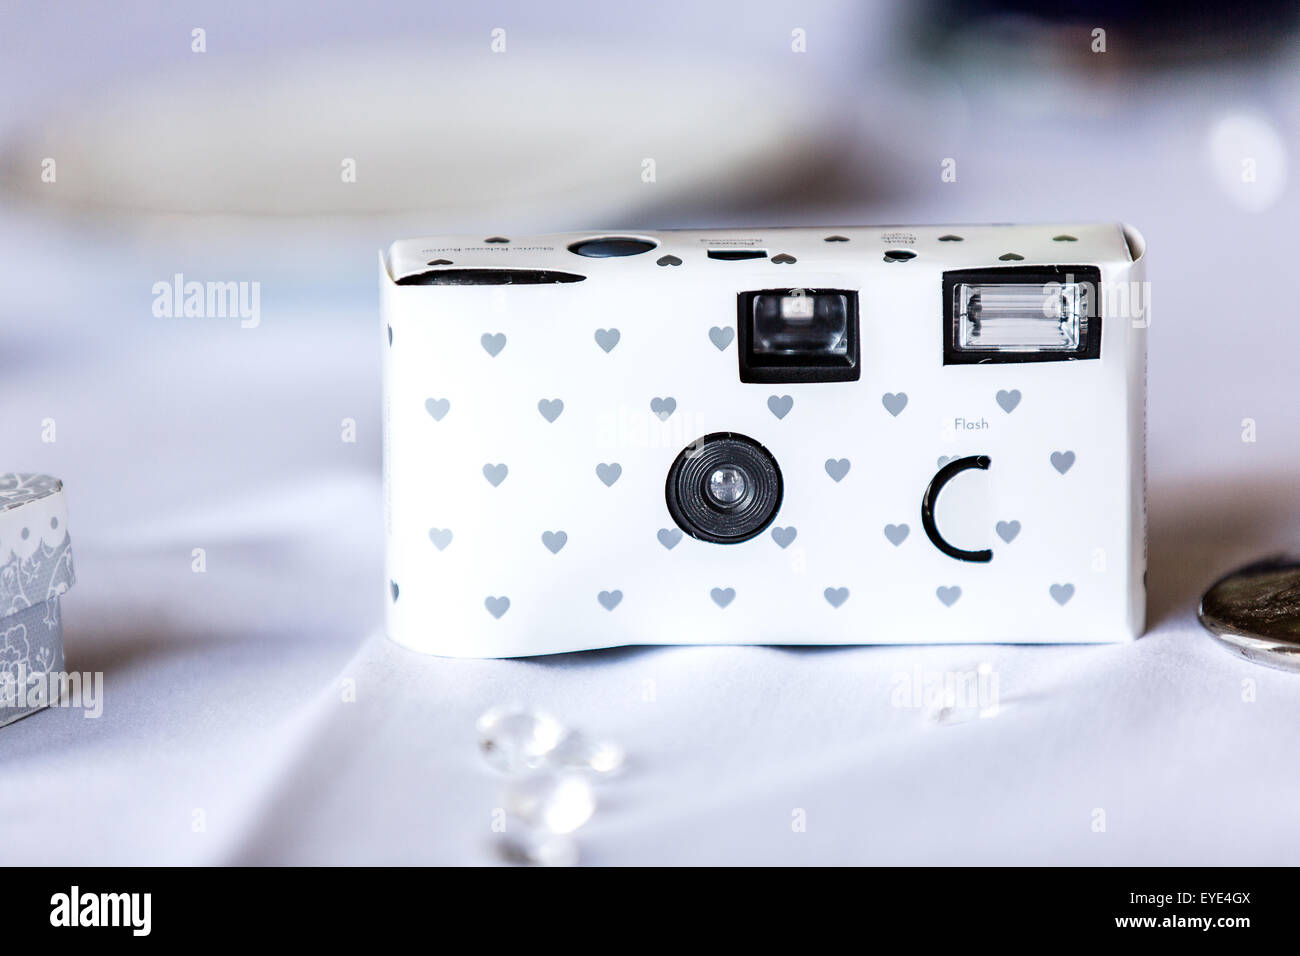 A Working Cardboard Disposable Camera Placed On A Guests Reception